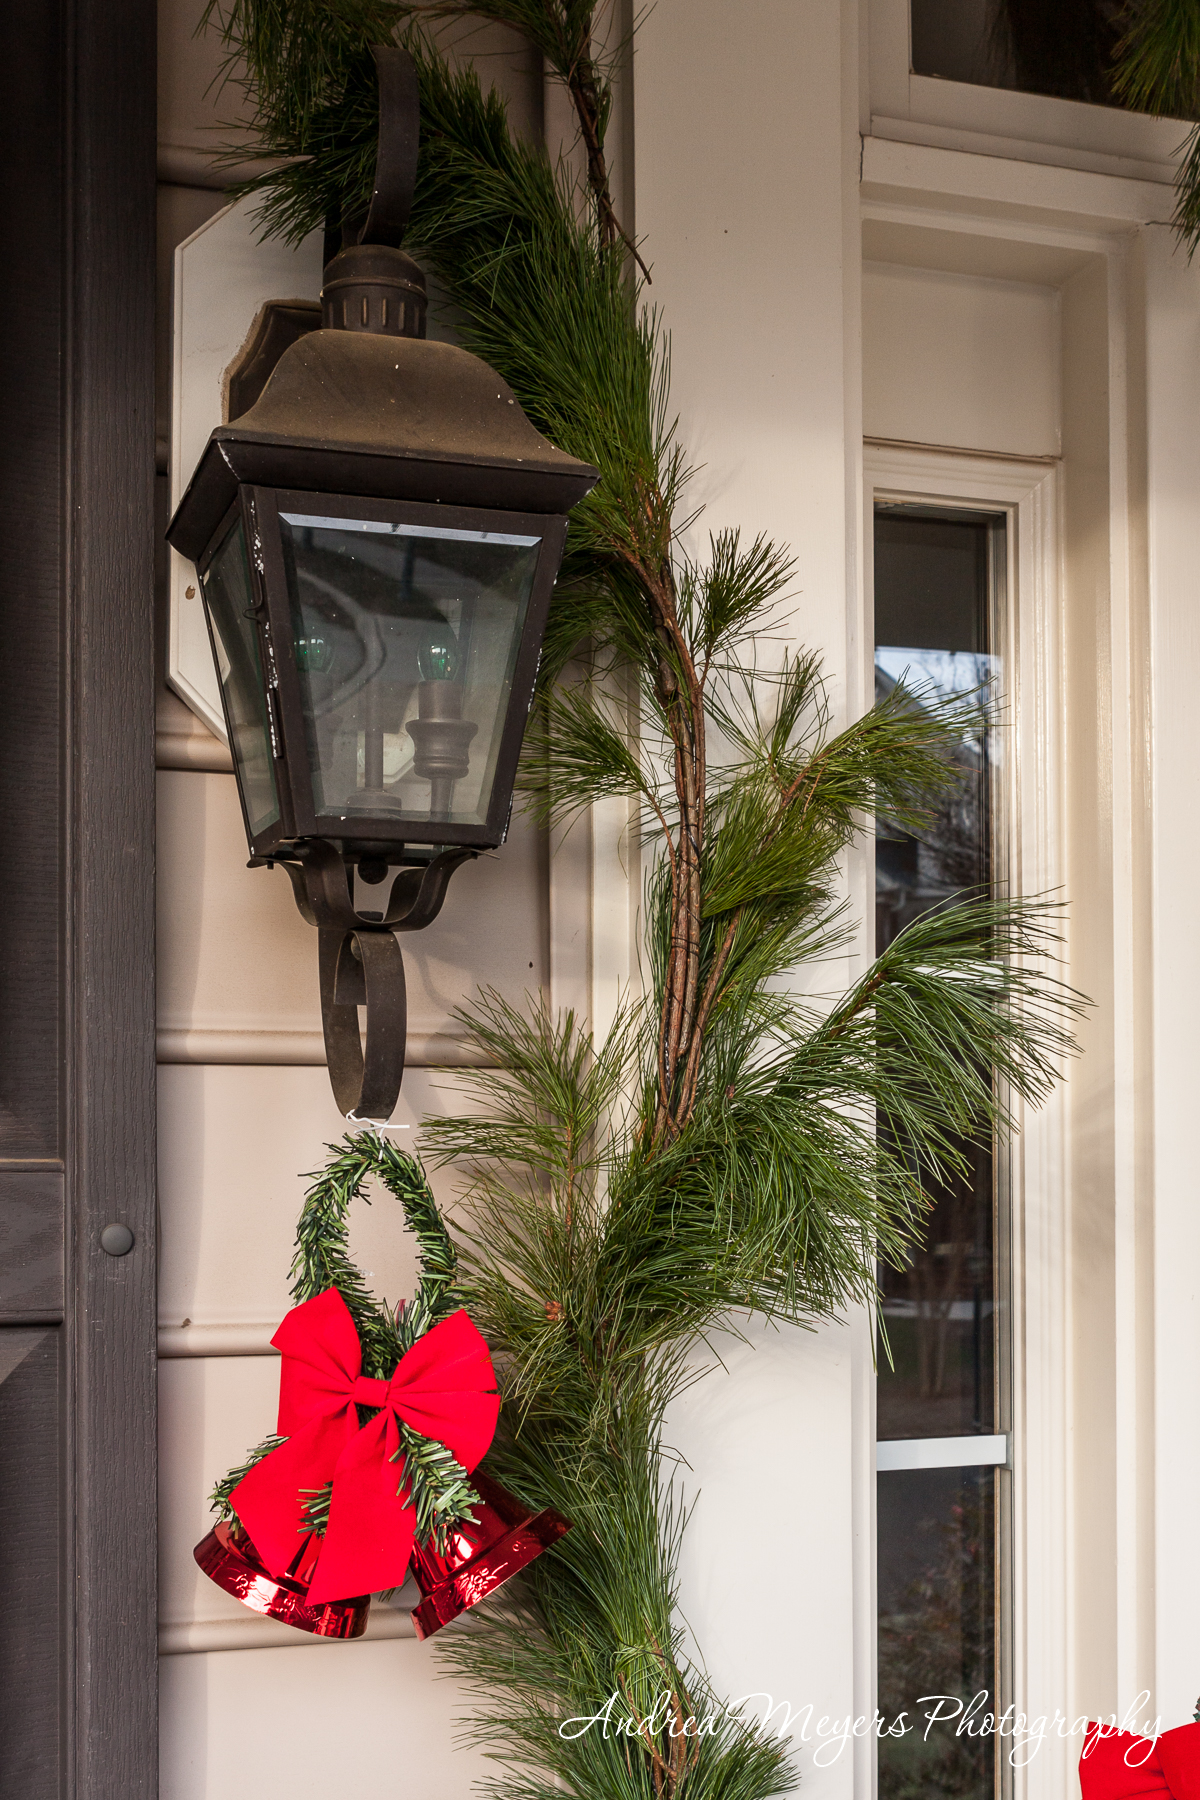 White pine garland with a red bell from Ticonderoga Farm in Loudoun County, VA